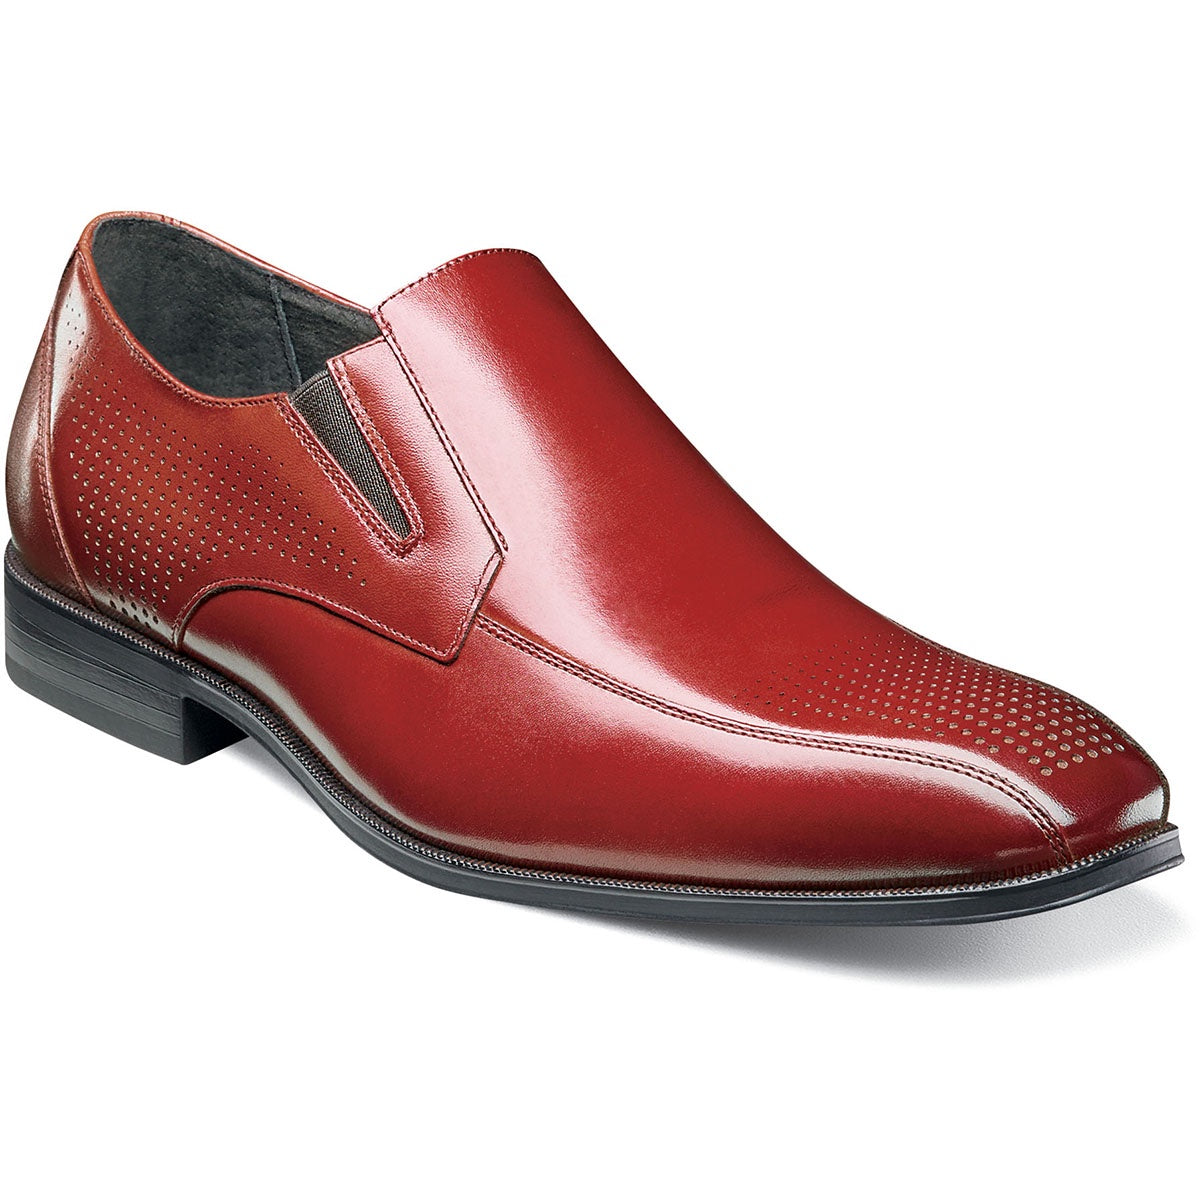 Stacy Adams Fairfax Bike Toe Slip On Oxford - Cinnamon Shoes - Dapperfam.com